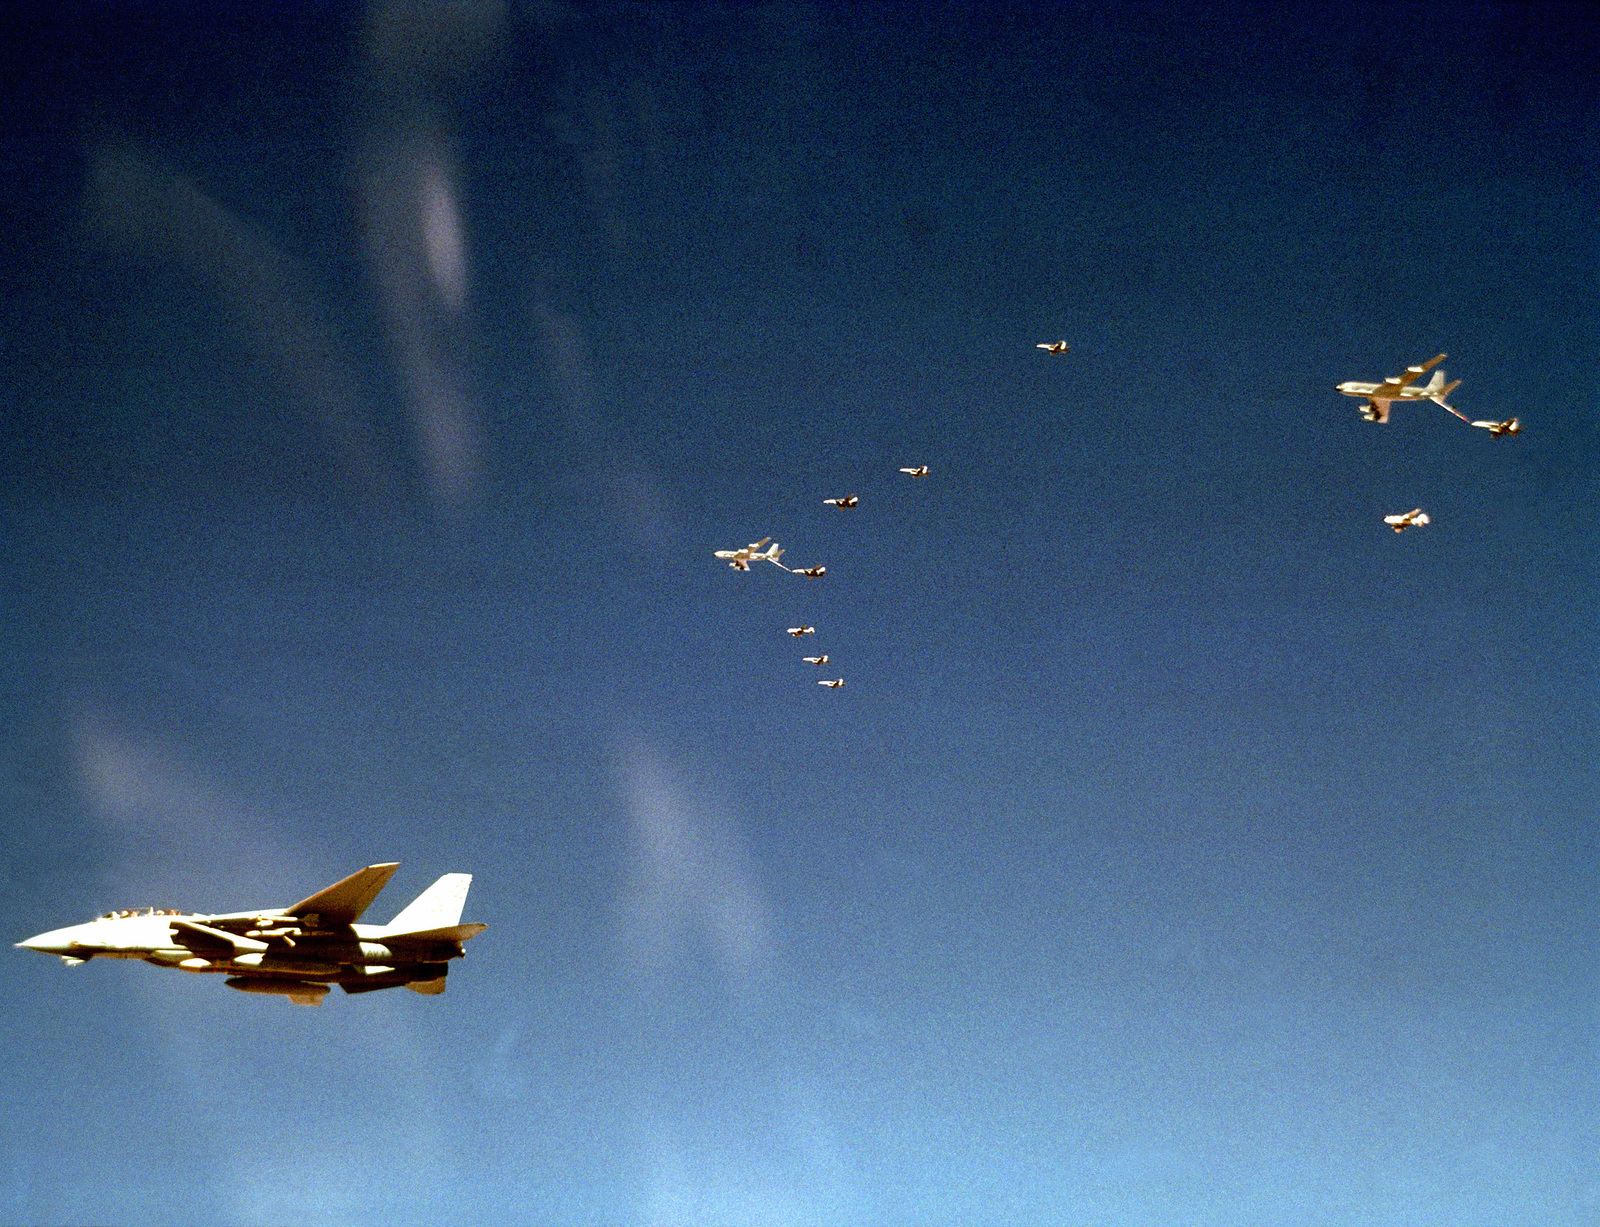 F/A-18 Hornet and A-6E Intruder aircraft from Carrier Air Wing 1 (CVW-1) conduct an in-flight refueling with a pair of U.S. Air Force KC-135 Stratotanker aircraft while en route to their target during Operation Desert Storm. A Fighter Squadron 33 (VF-33) F-14A Tomcat aircraft, also from CVW-1, is in the foreground. CVW-1 is embarked aboard the aircraft carrier USS AMERICA (CV 66).